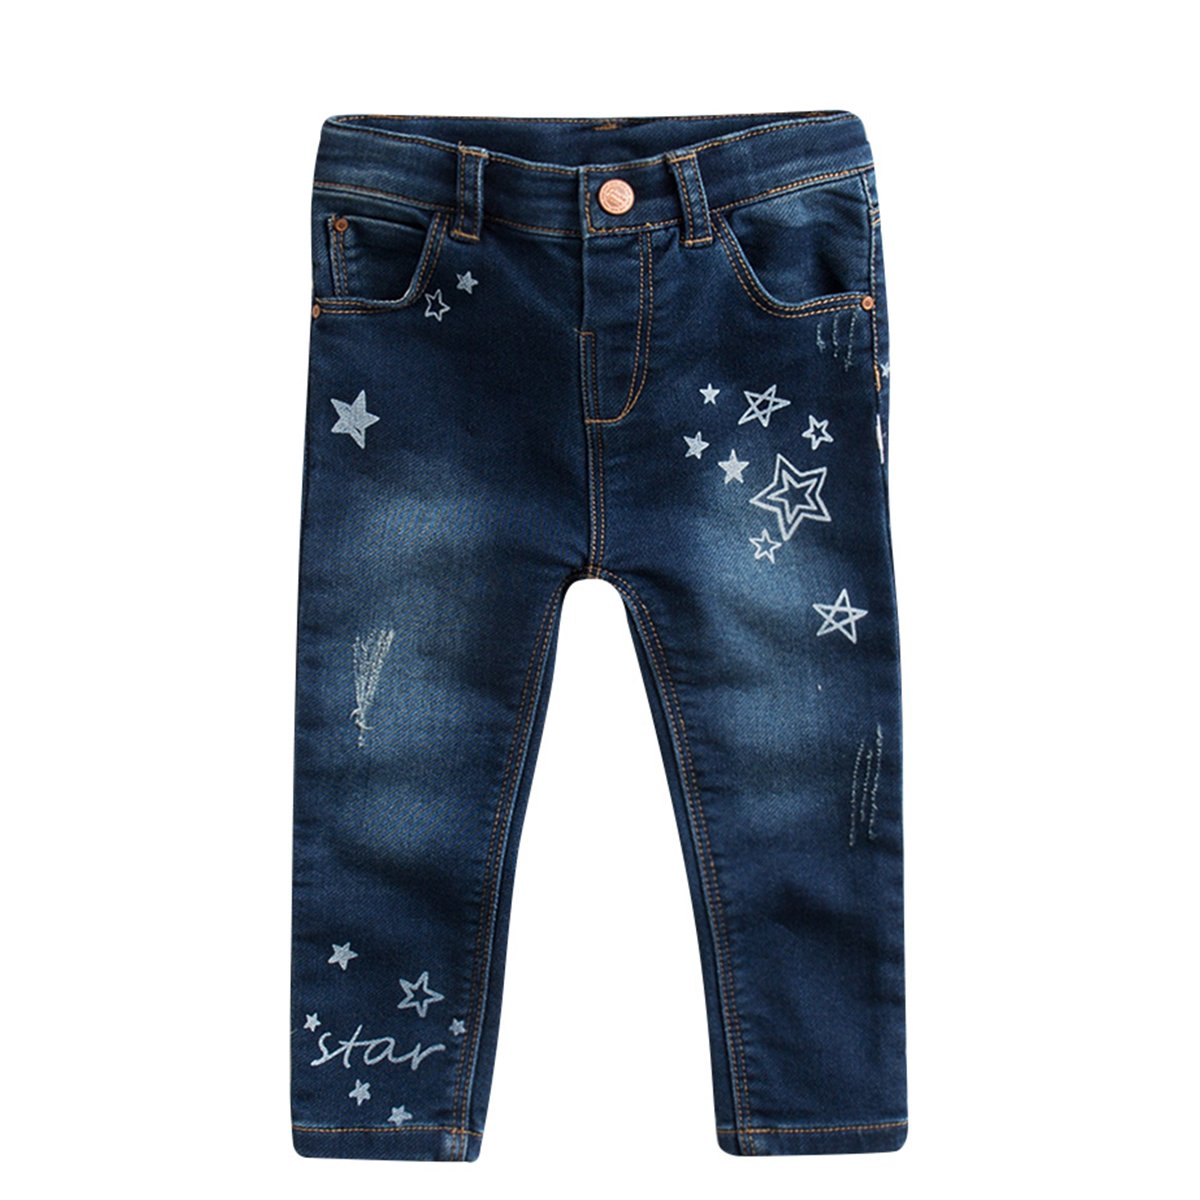 marc janie Baby Toddler Girls Star Pattern Denim Jeans with Packets